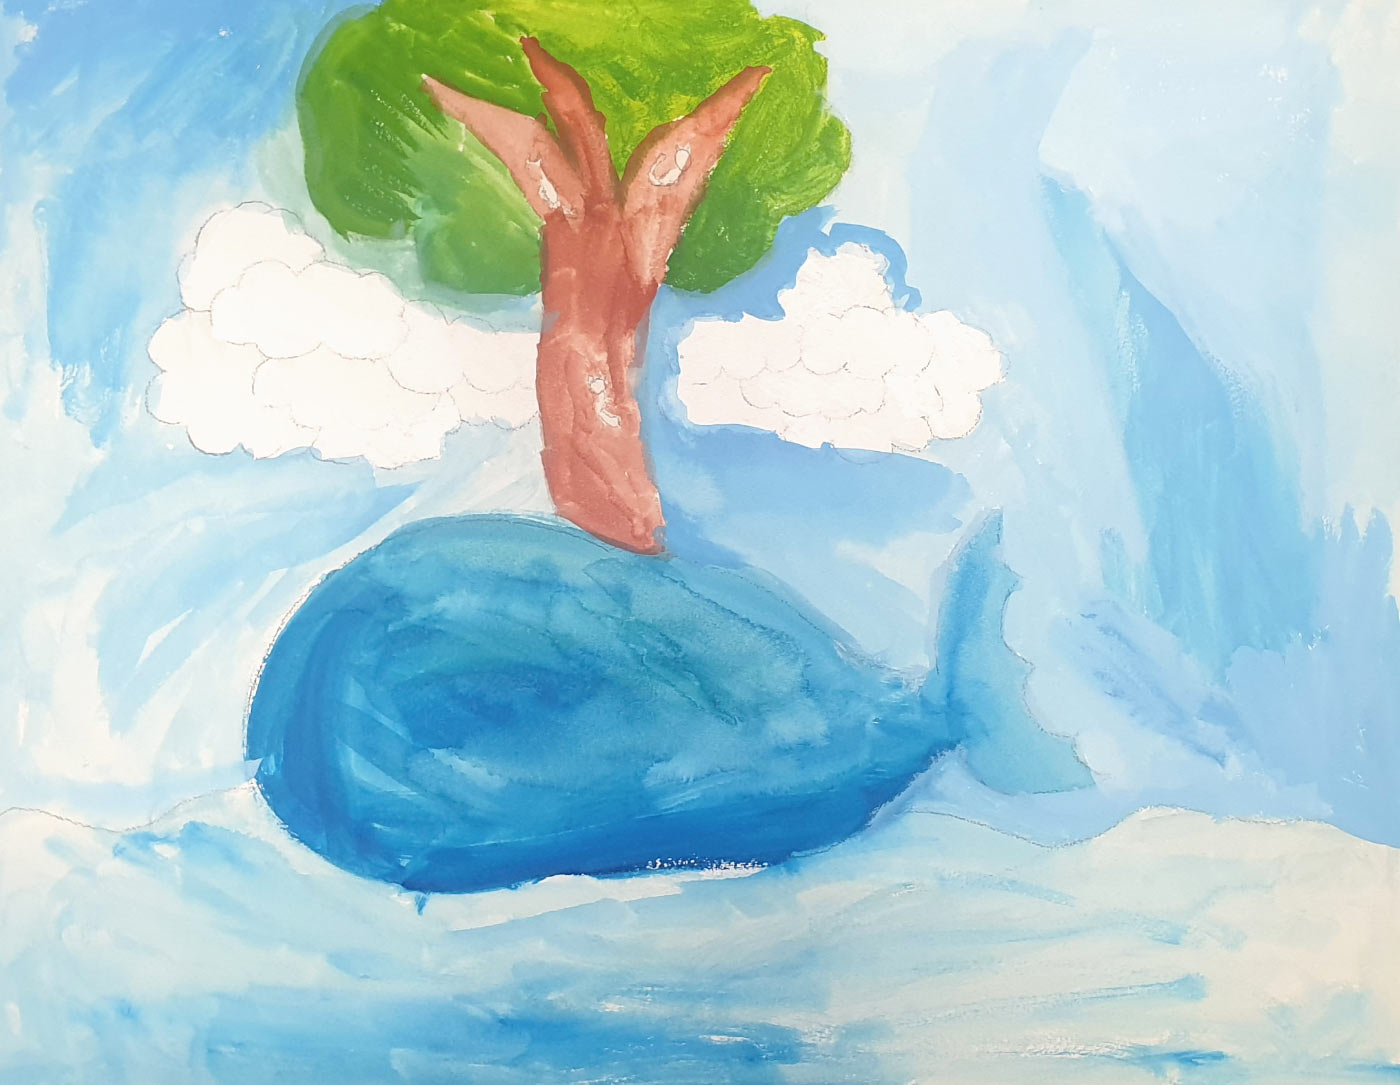 Painting showing a tree growing from a large blue form.